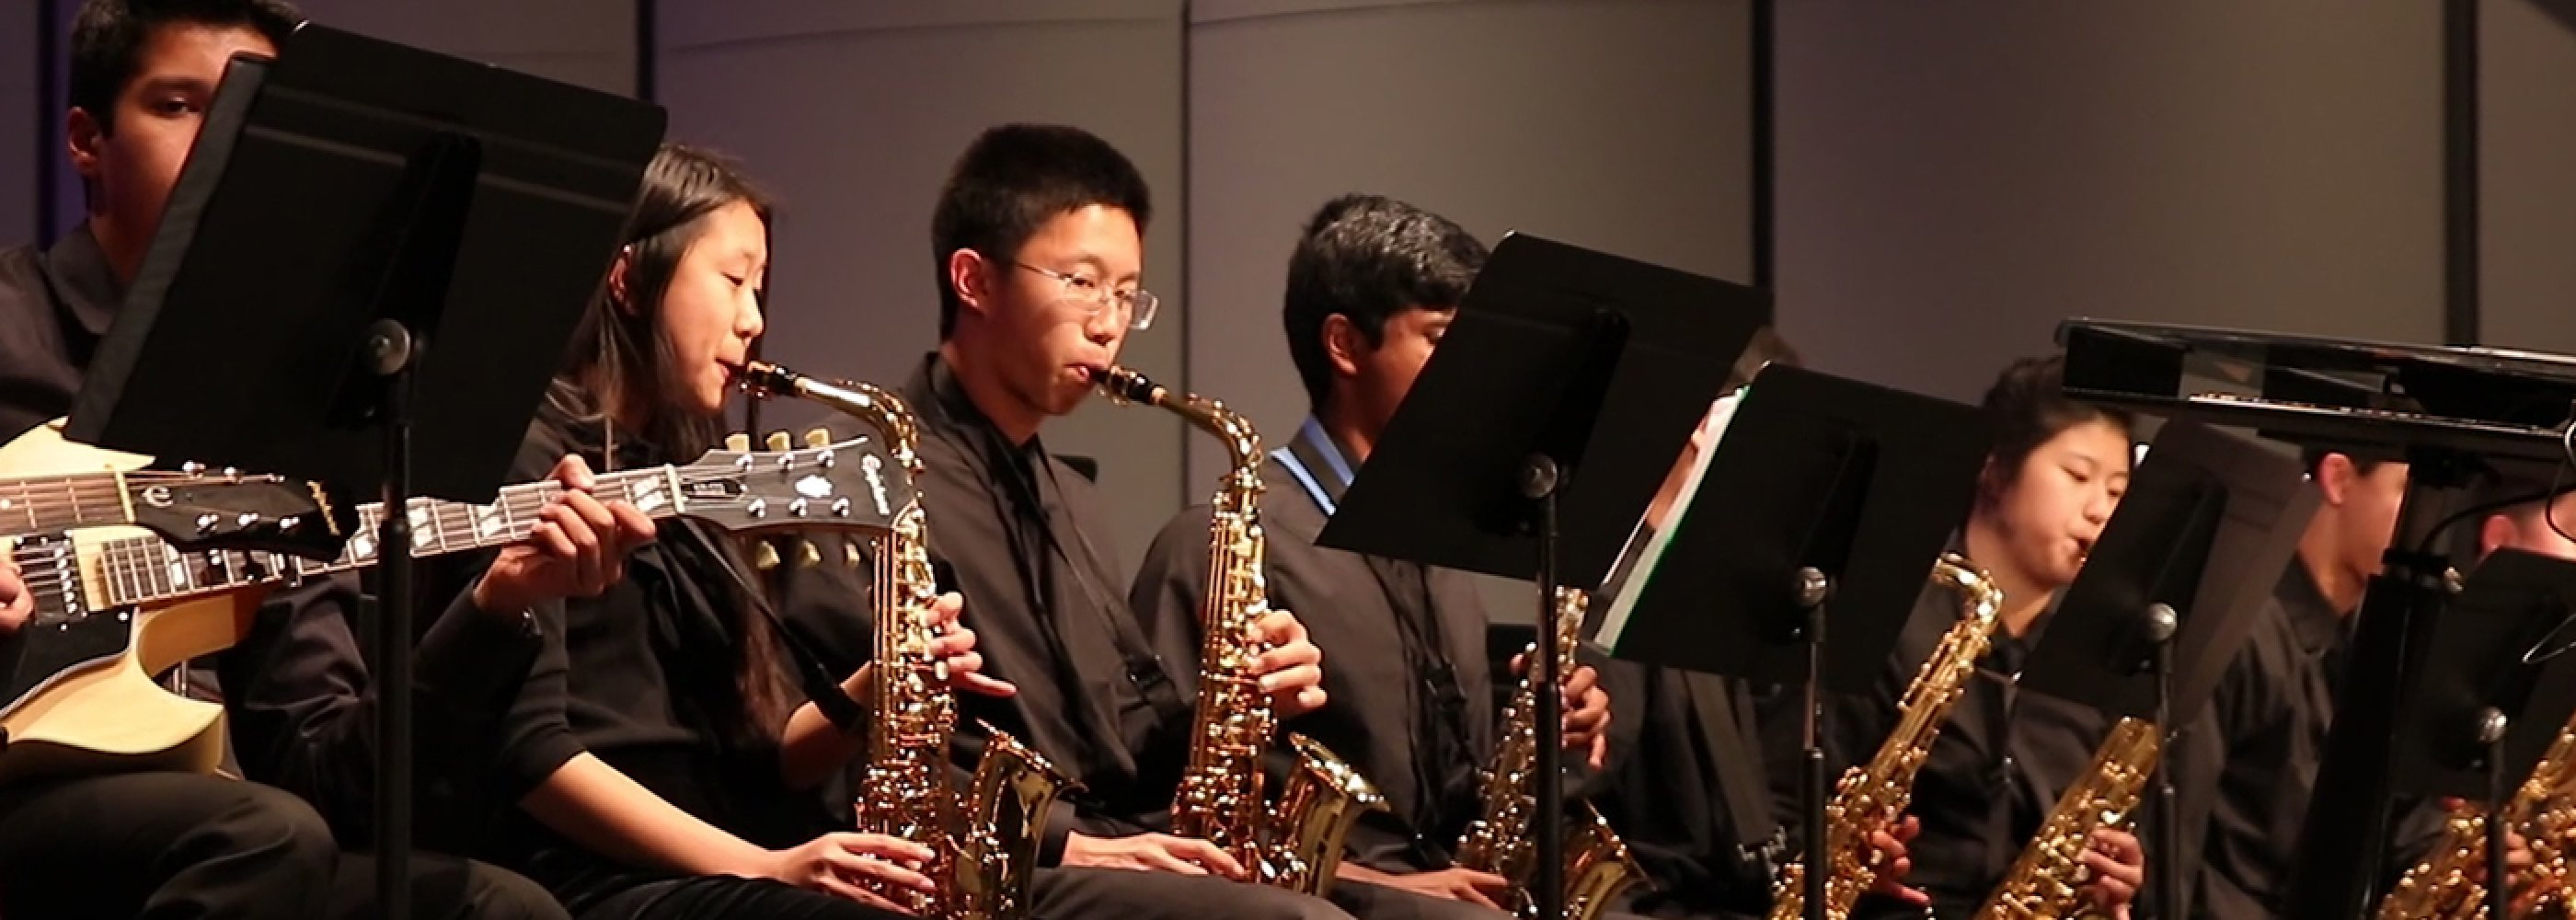 Students playing Saxaphones